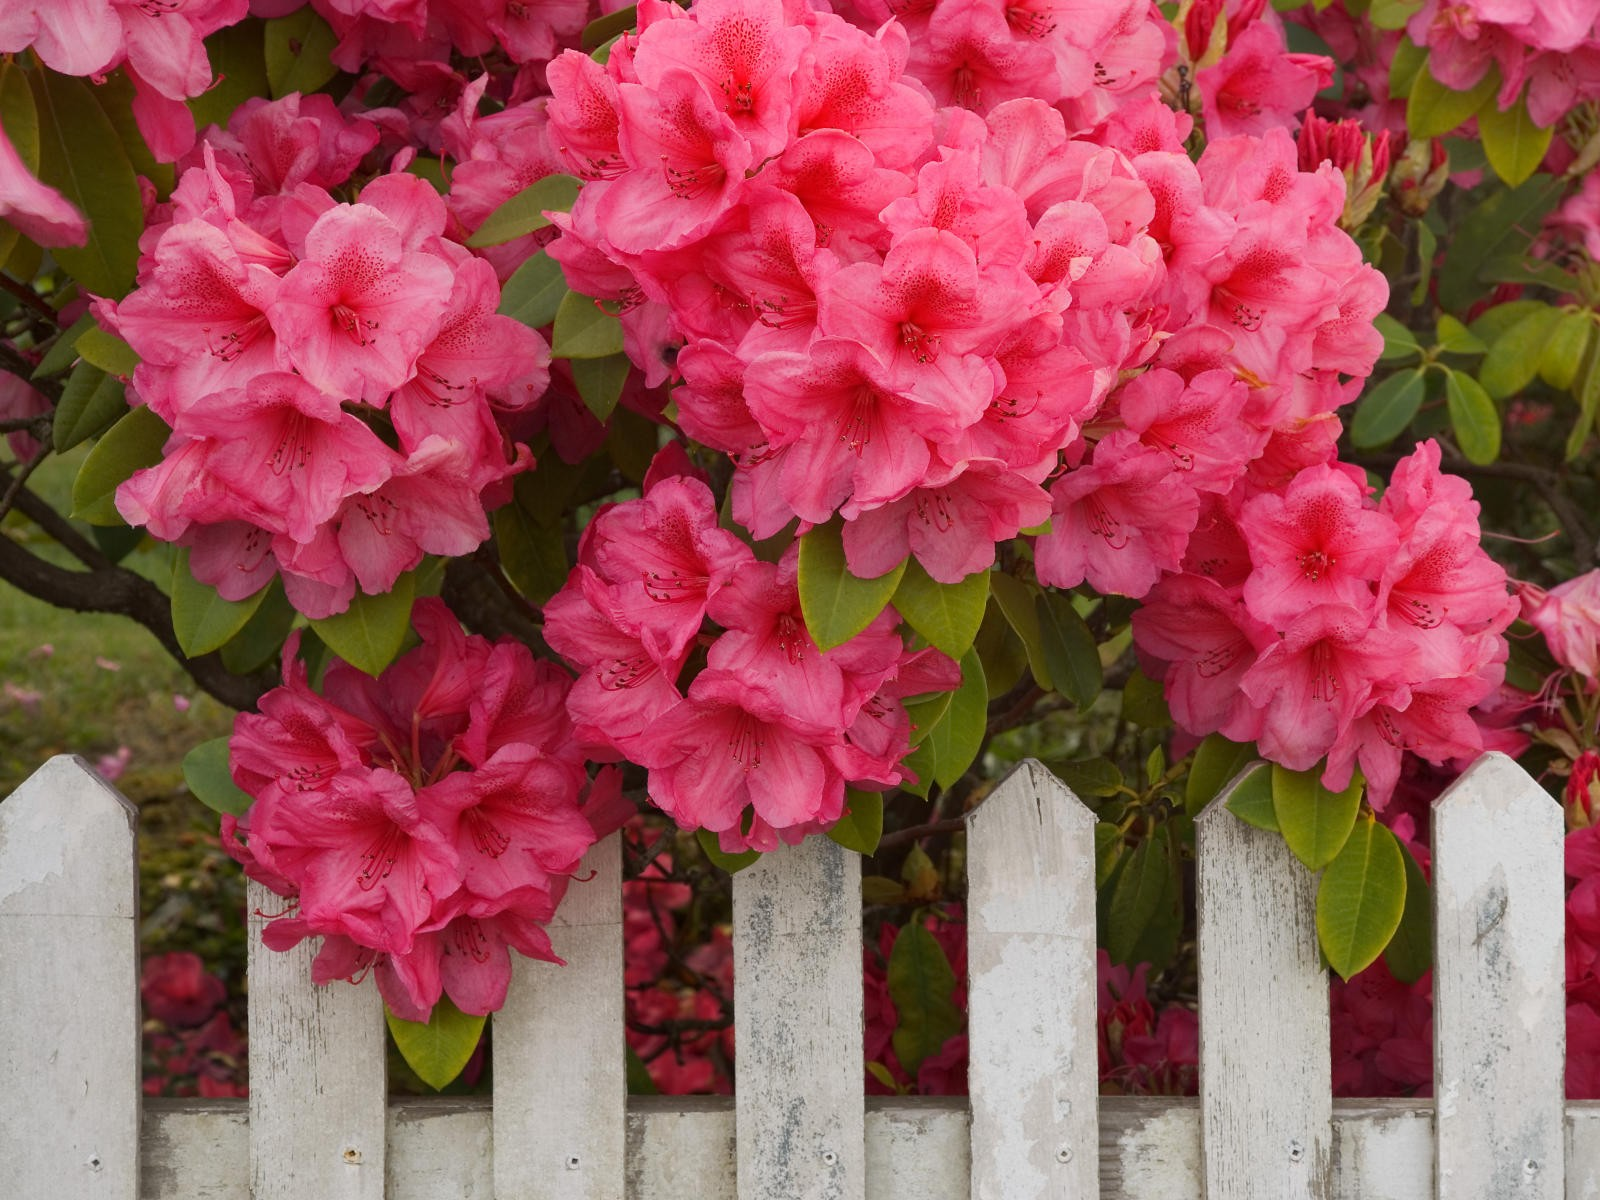 Rhododendron and Fence, Reedsport, Oregon